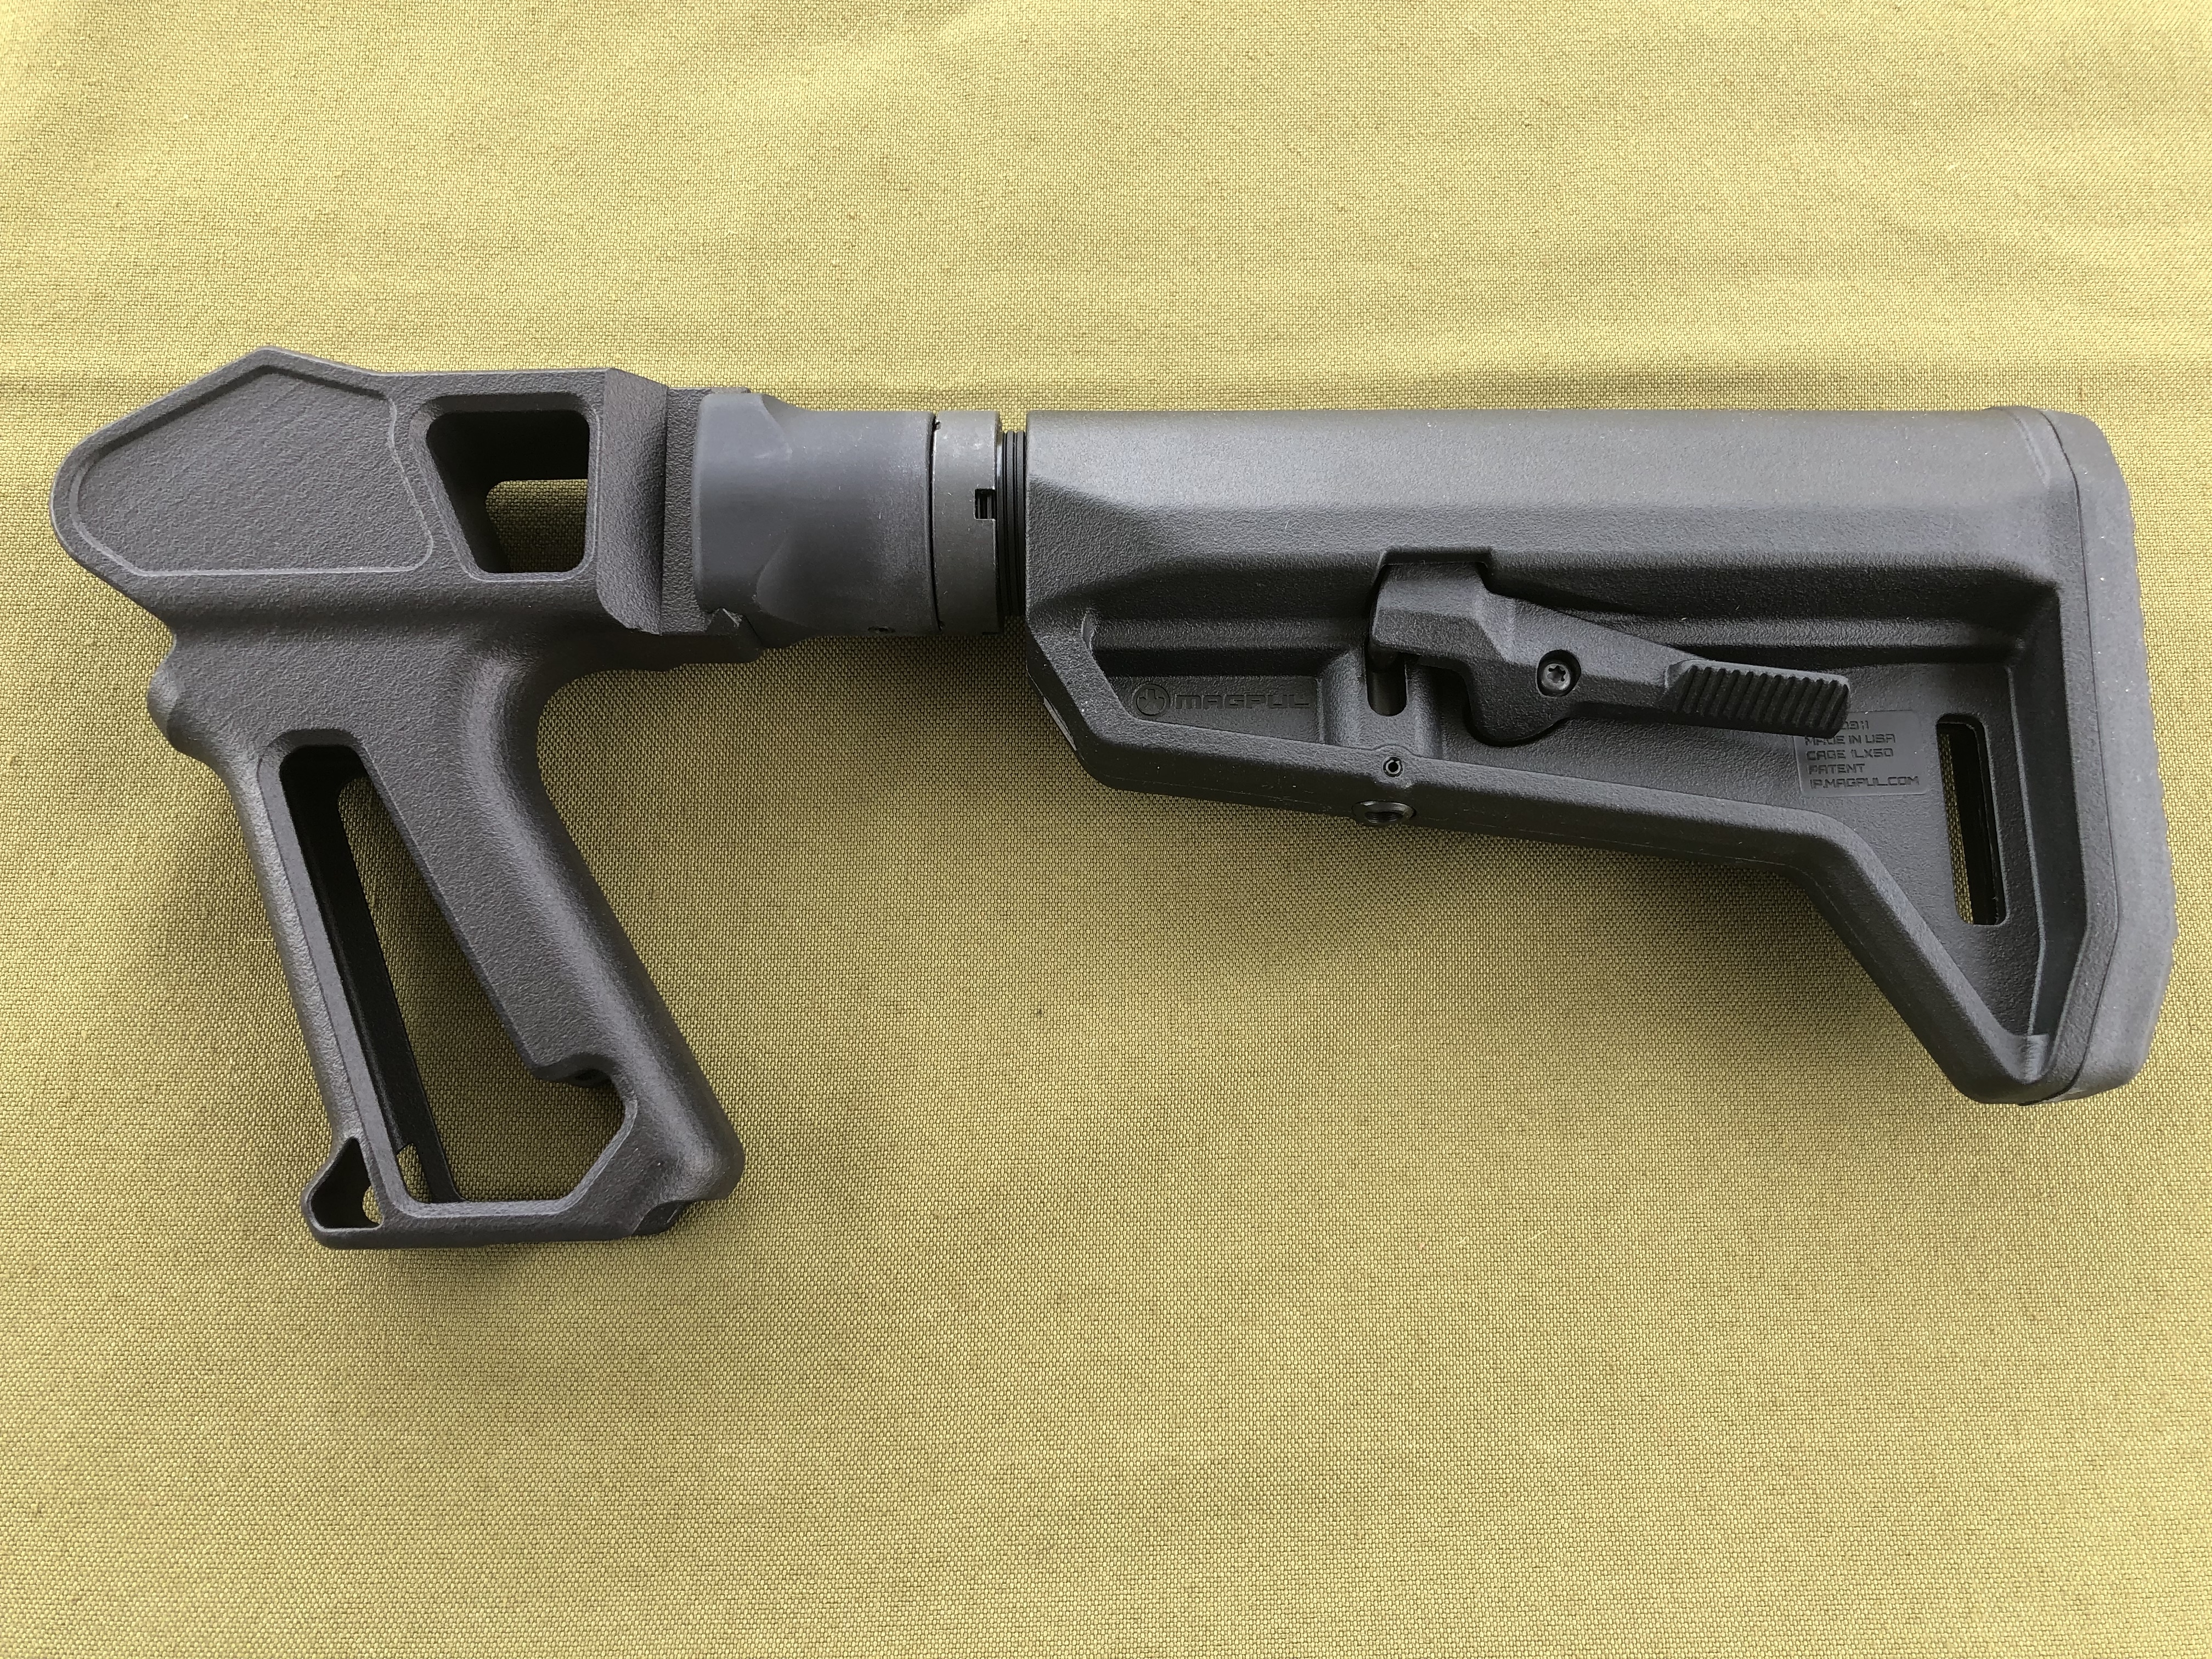 T/C G2 Contender Black SHARPS Grip/1913 Interface Adapter/Mil Spec Buffer Tube/Castle Nut/MAGPUL KIT